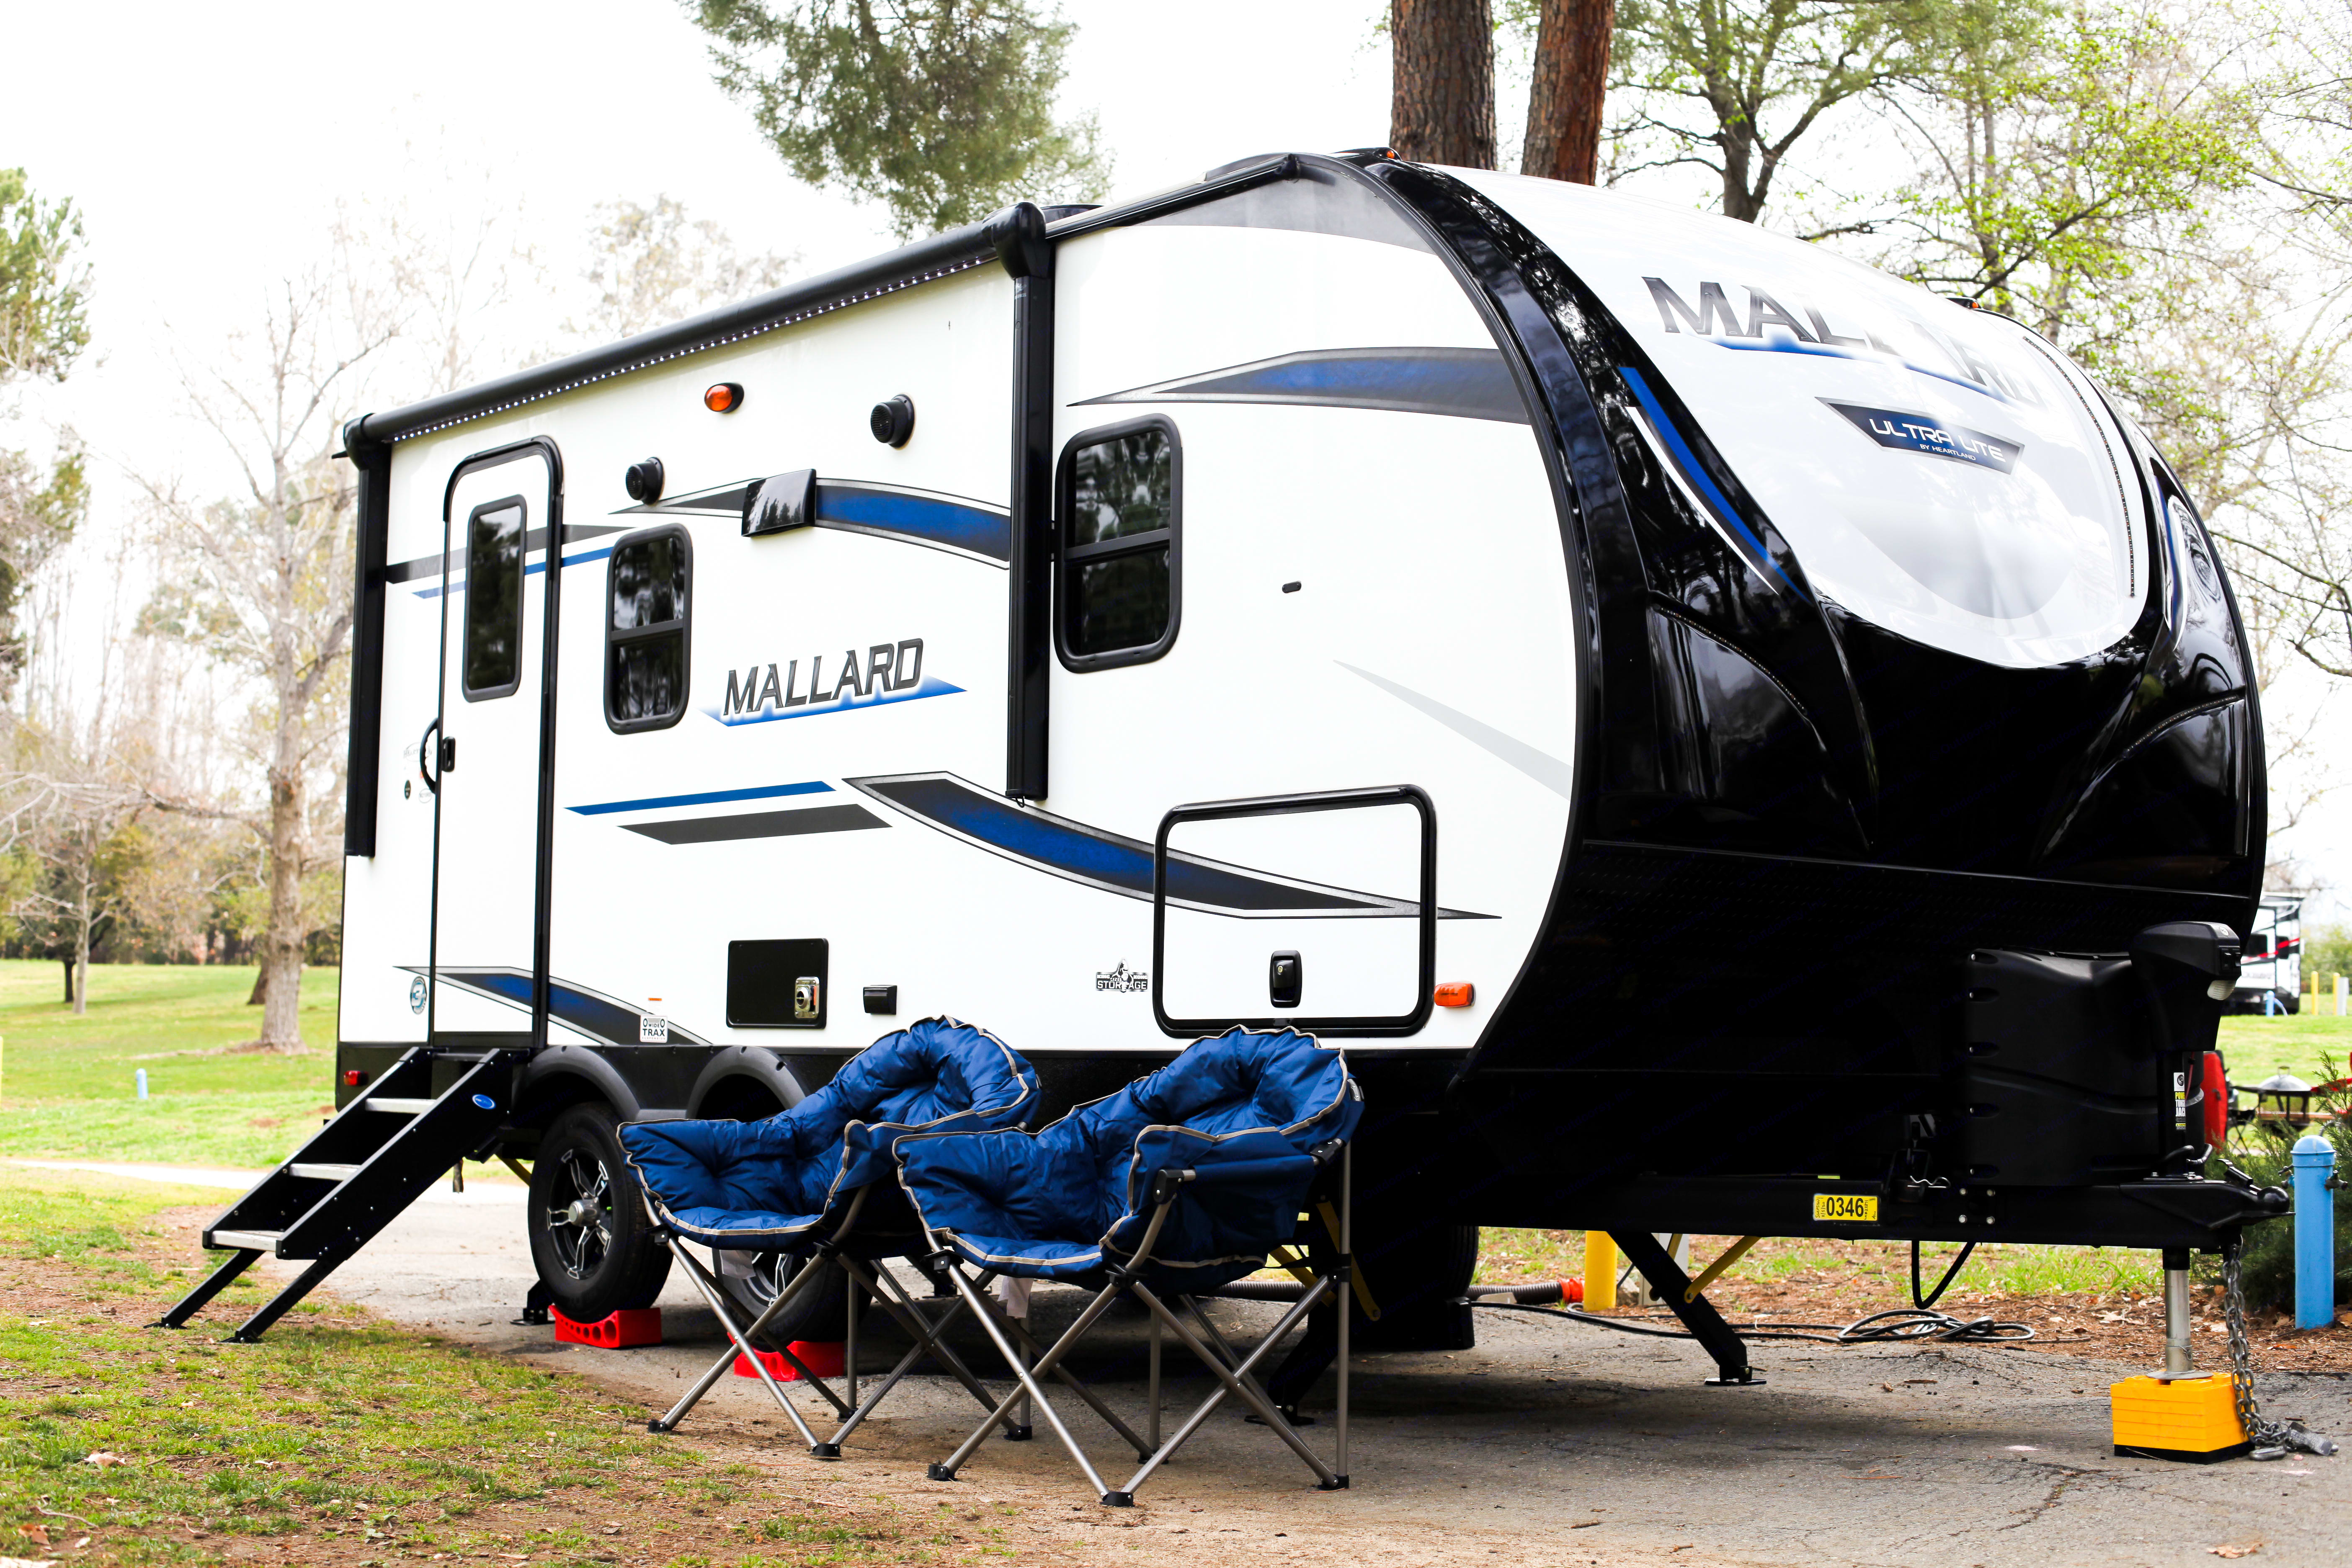 Only 22 Ft  Thick insulation to keep you cool in the summer and warm in the winter. Rental includes 2 camping chairs!. Heartland Mallard 2020